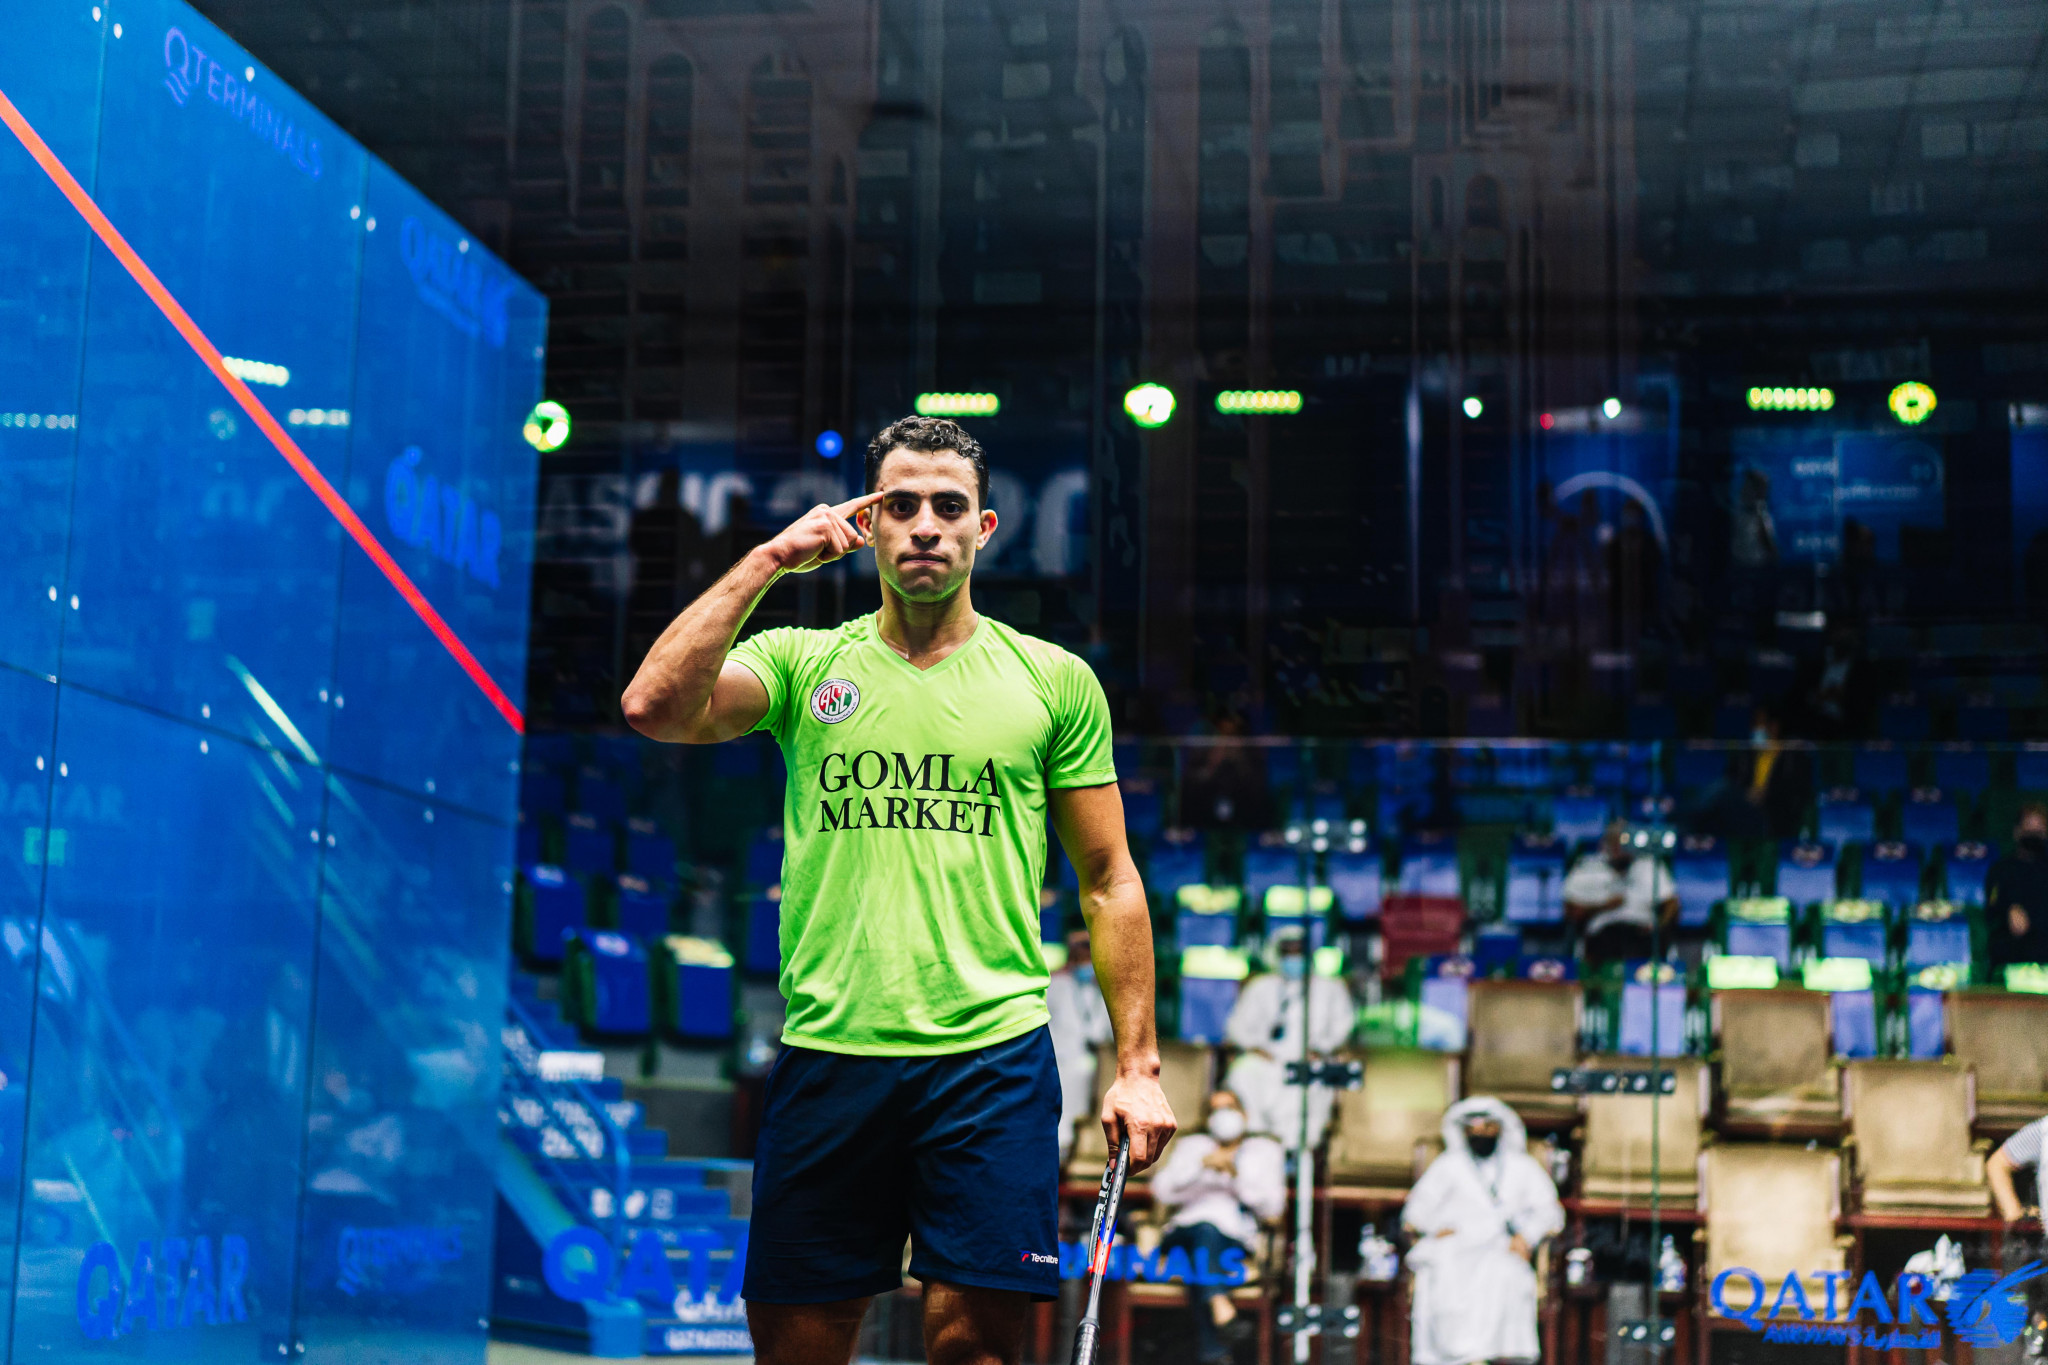 World number one Farag sets up semi-final with world champion Momen at PSA Qatar Classic